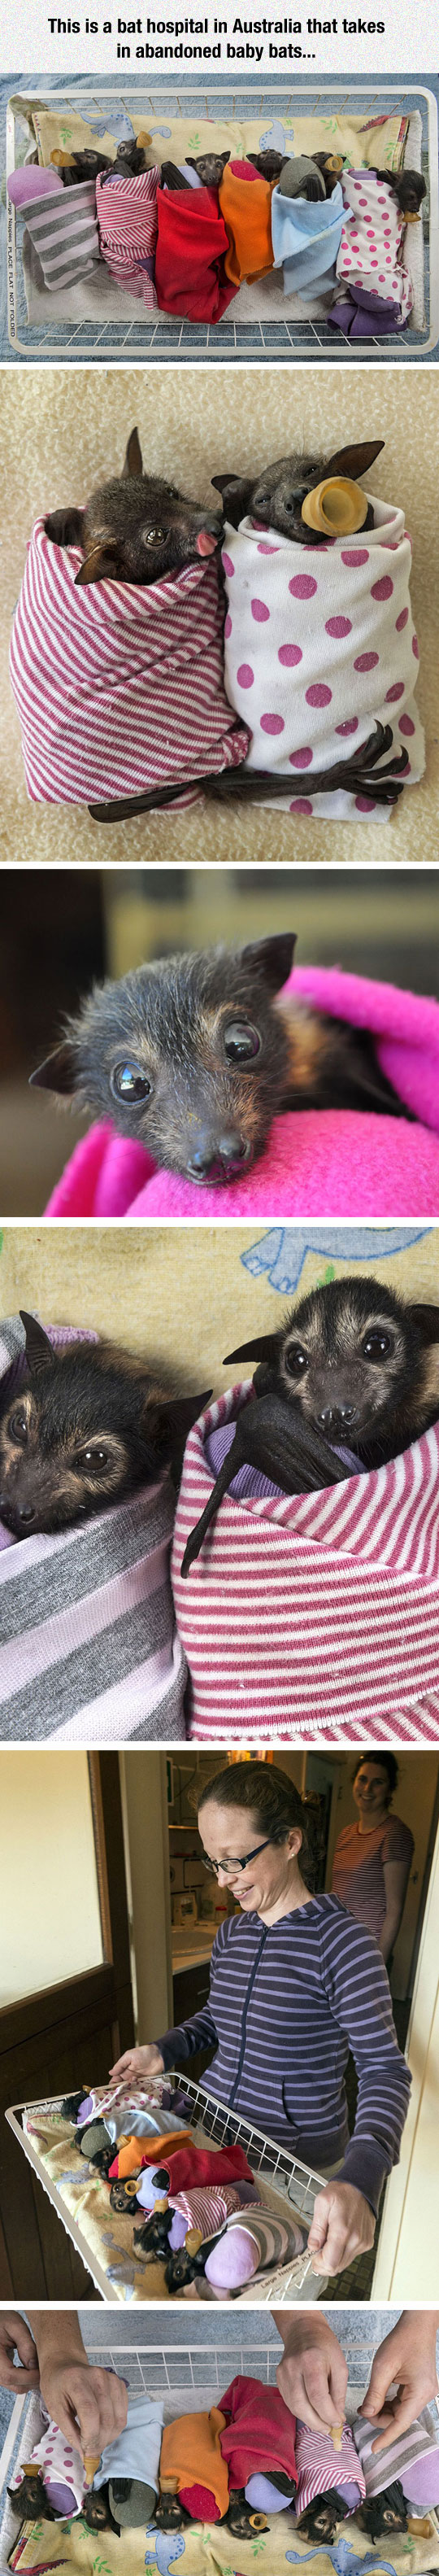 cool-bat-hospital-blanket-cozy